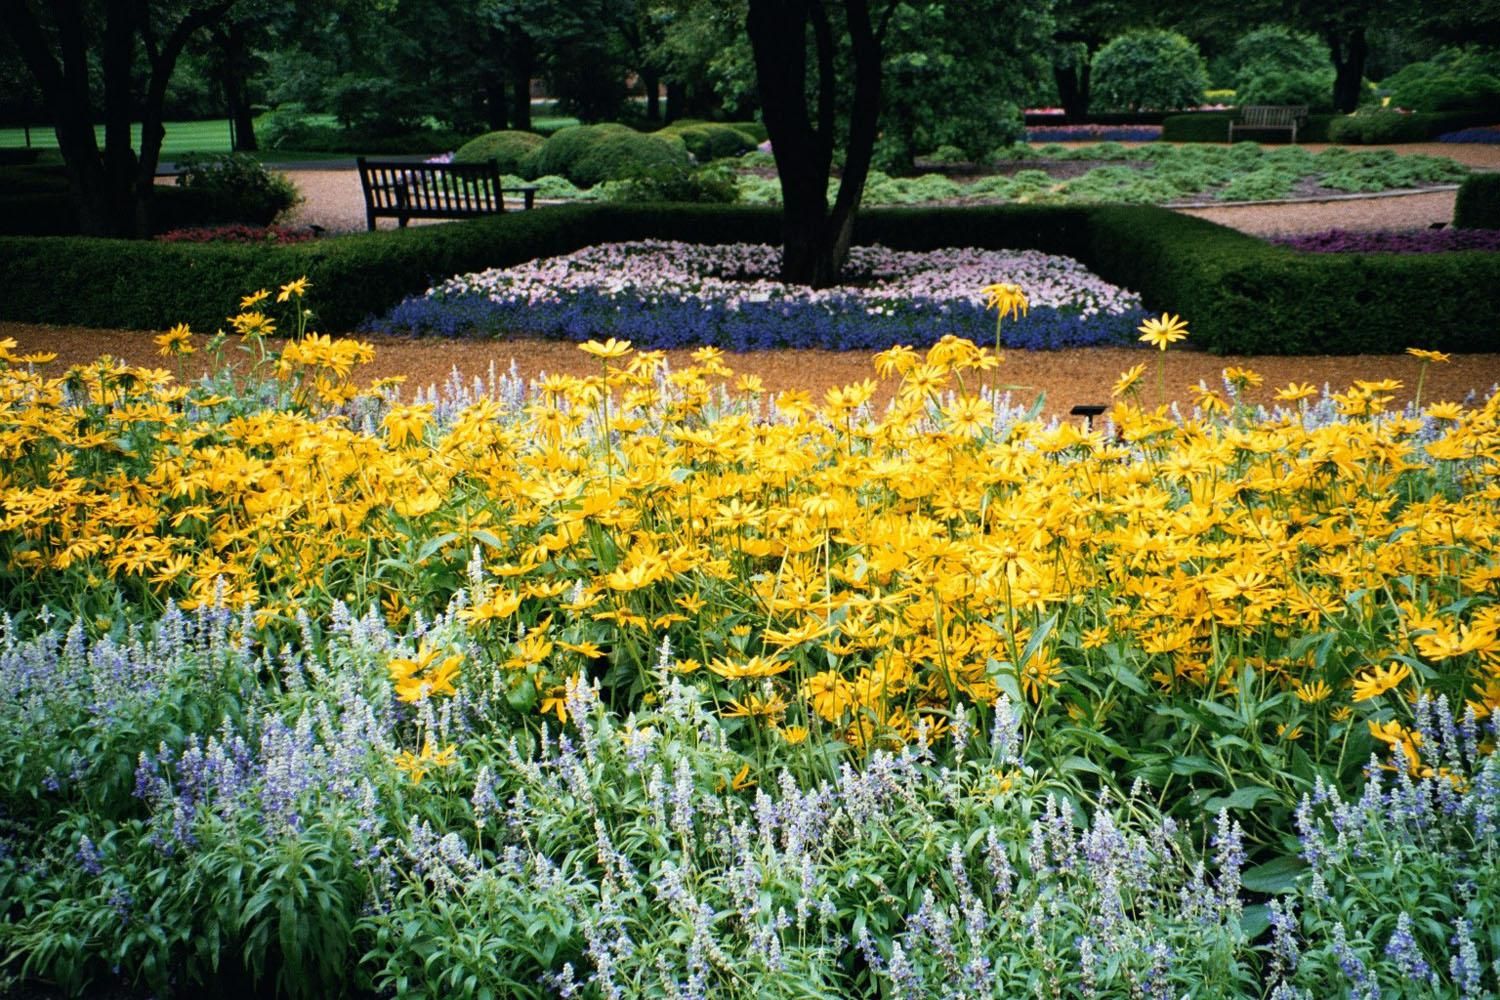 Strata is a frosty gray and blue violet Salvia farinacea that combines well with a host of colors including these yellow Prairie Sun rudbeckias.